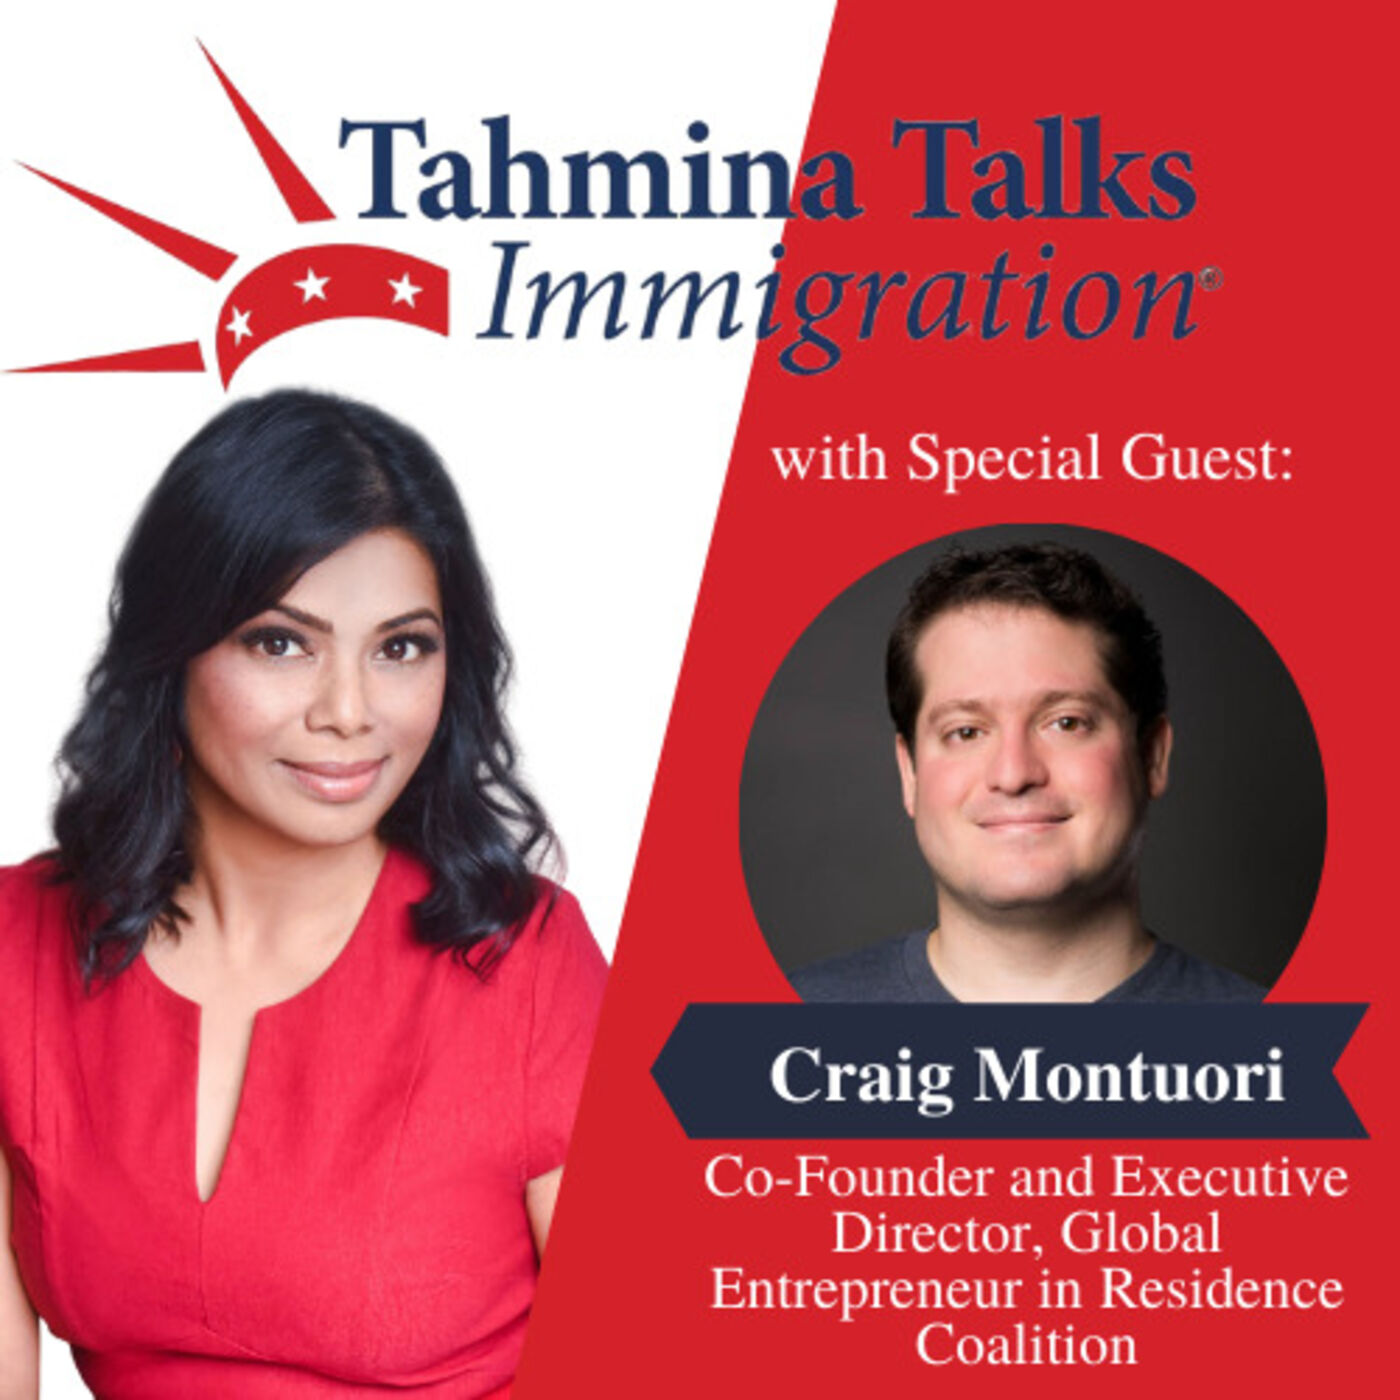 #122 Startup Visa Series - Craig Montuori, Co-Founder and Executive Director, Global Entrepreneur in Residence Coalition